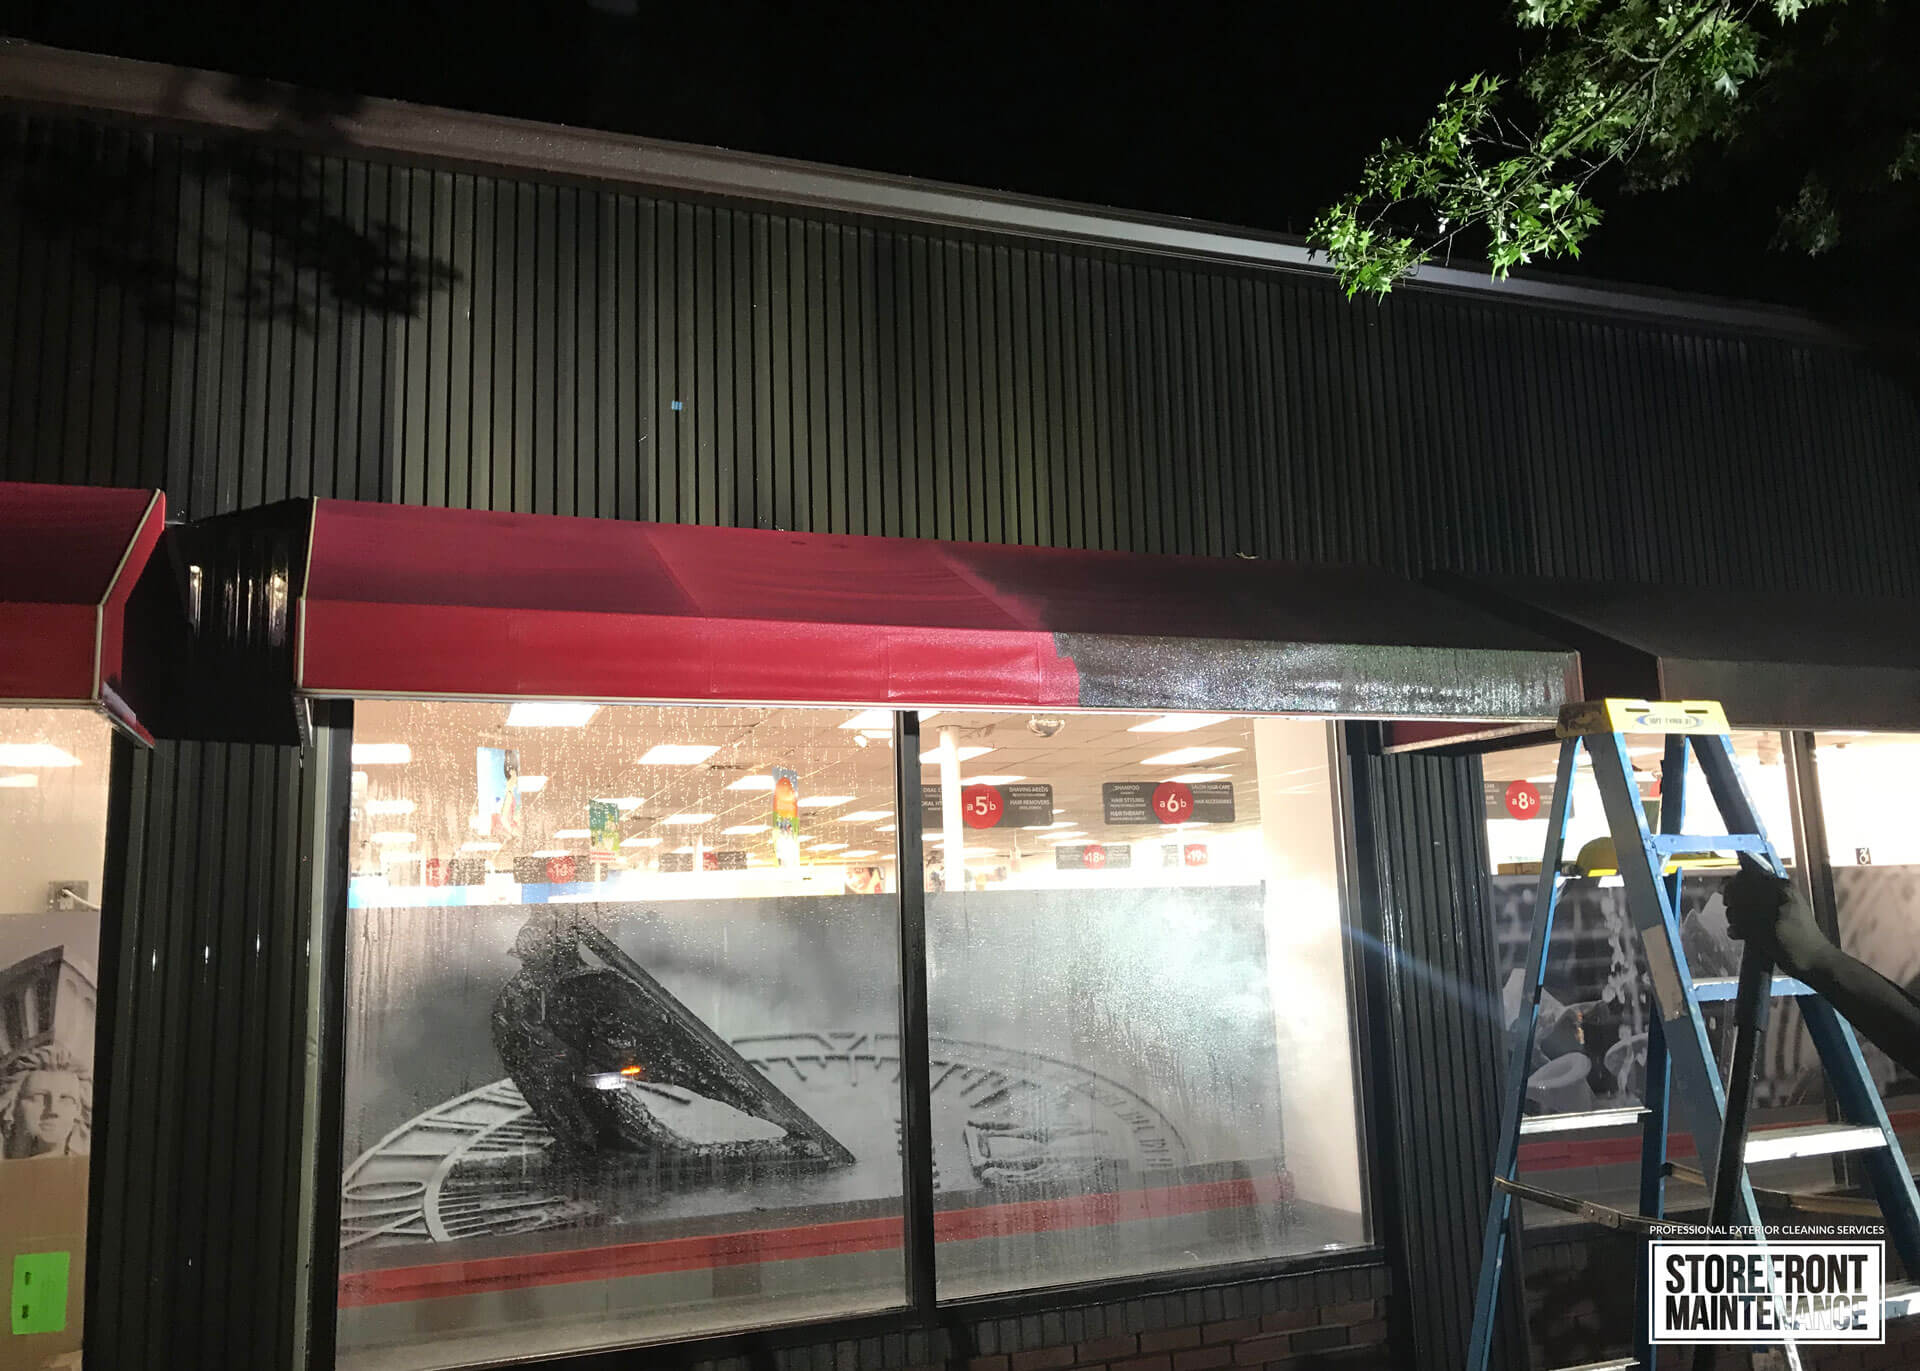 awning-cleaning-storefront-maintenance-pressure-washing-power-washing-6